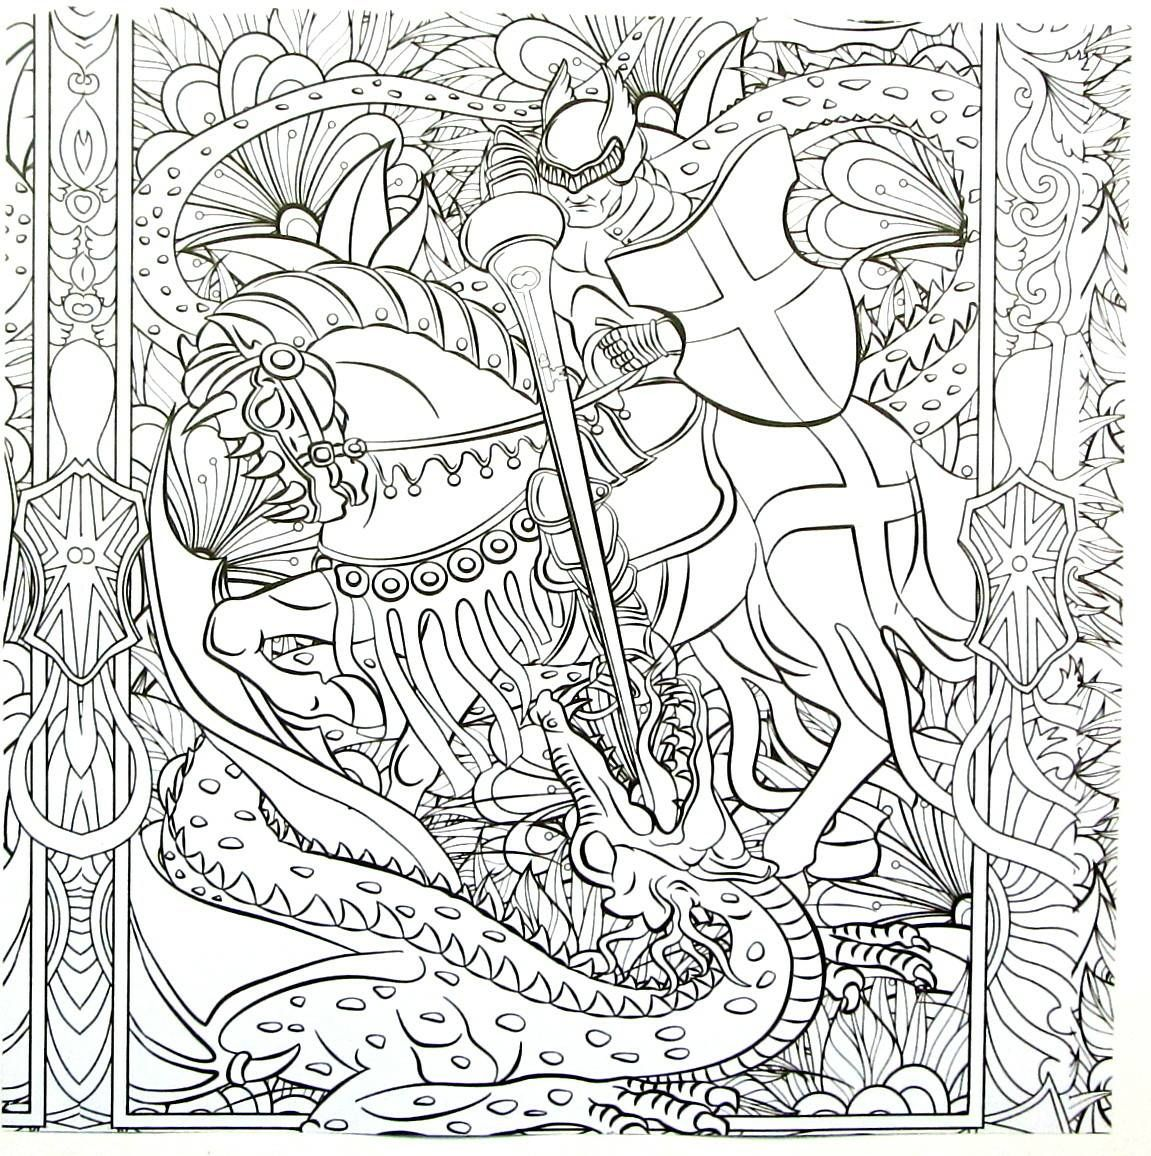 Halloween coloring pages stock vector. Illustration of drawing ... | 1156x1151